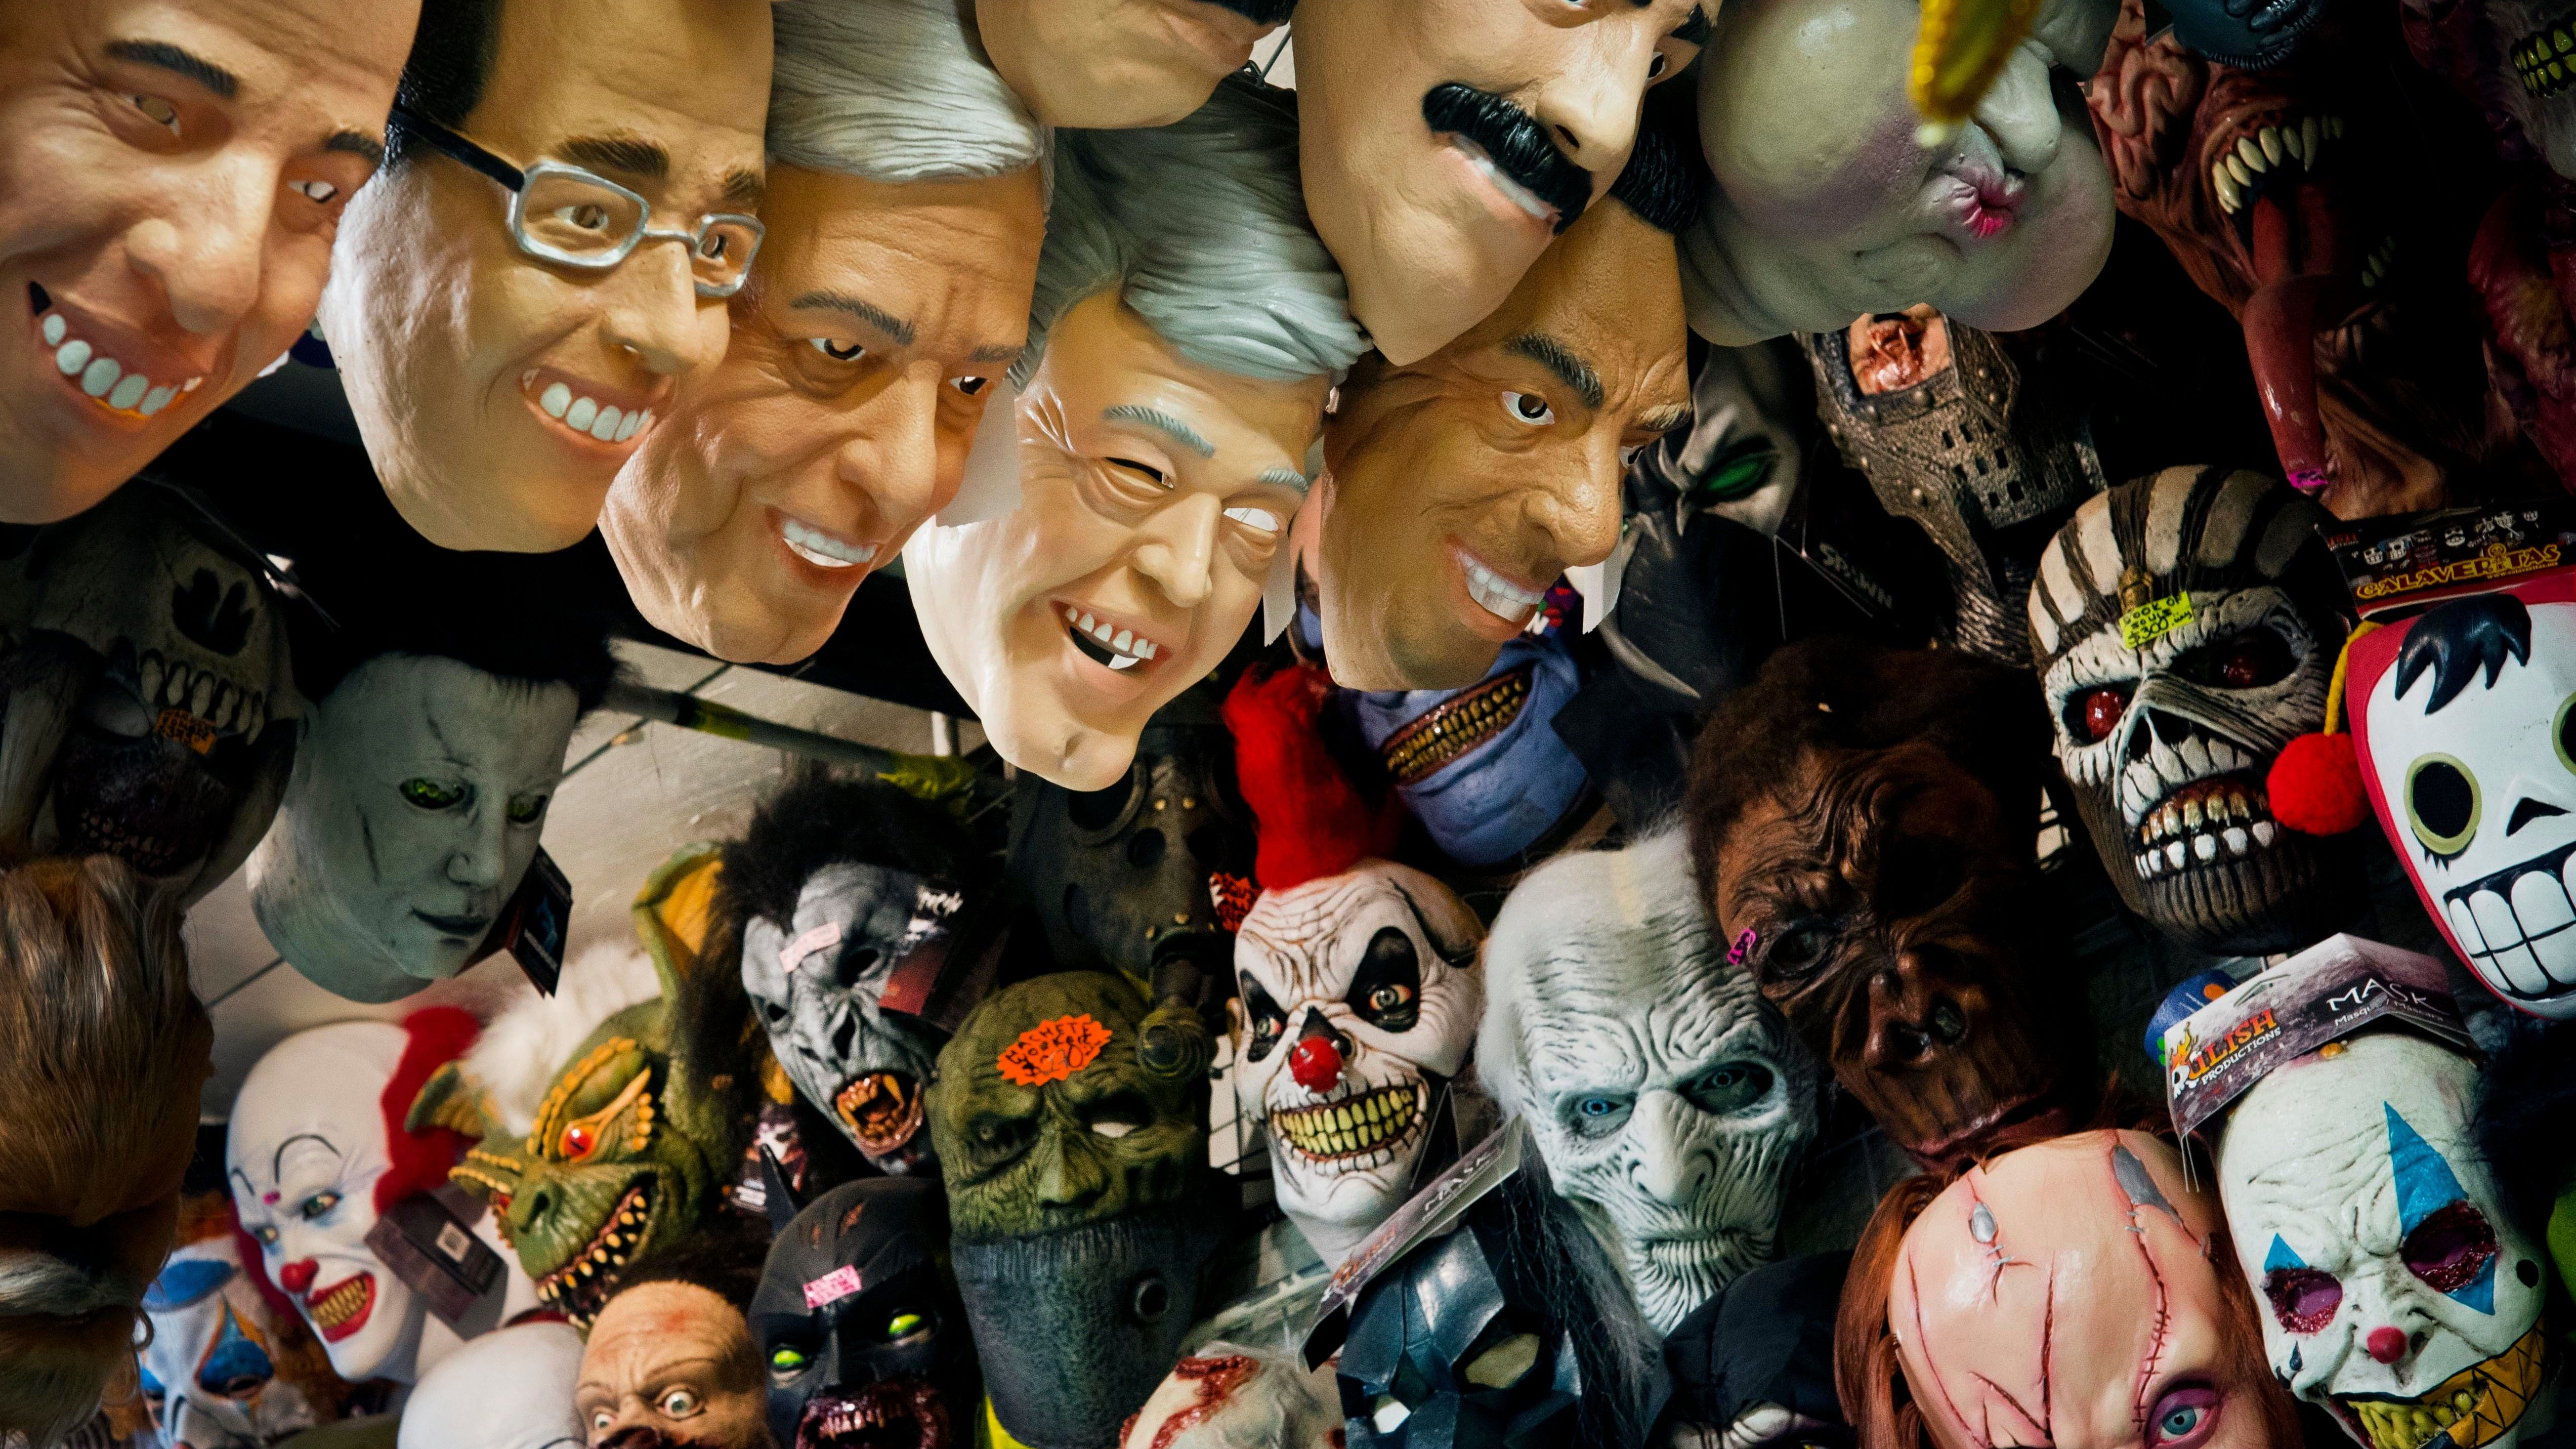 masks representing Mexican presidential candidates Jose Antonio Meade, of the Institutional Revolutionary Party (PRI), Ricardo Anaya, center, of the left-right coalition Forward for Mexico, and Andres Manuel Lopez Obrador of the Morena party are for sale at a local market in Mexico City,